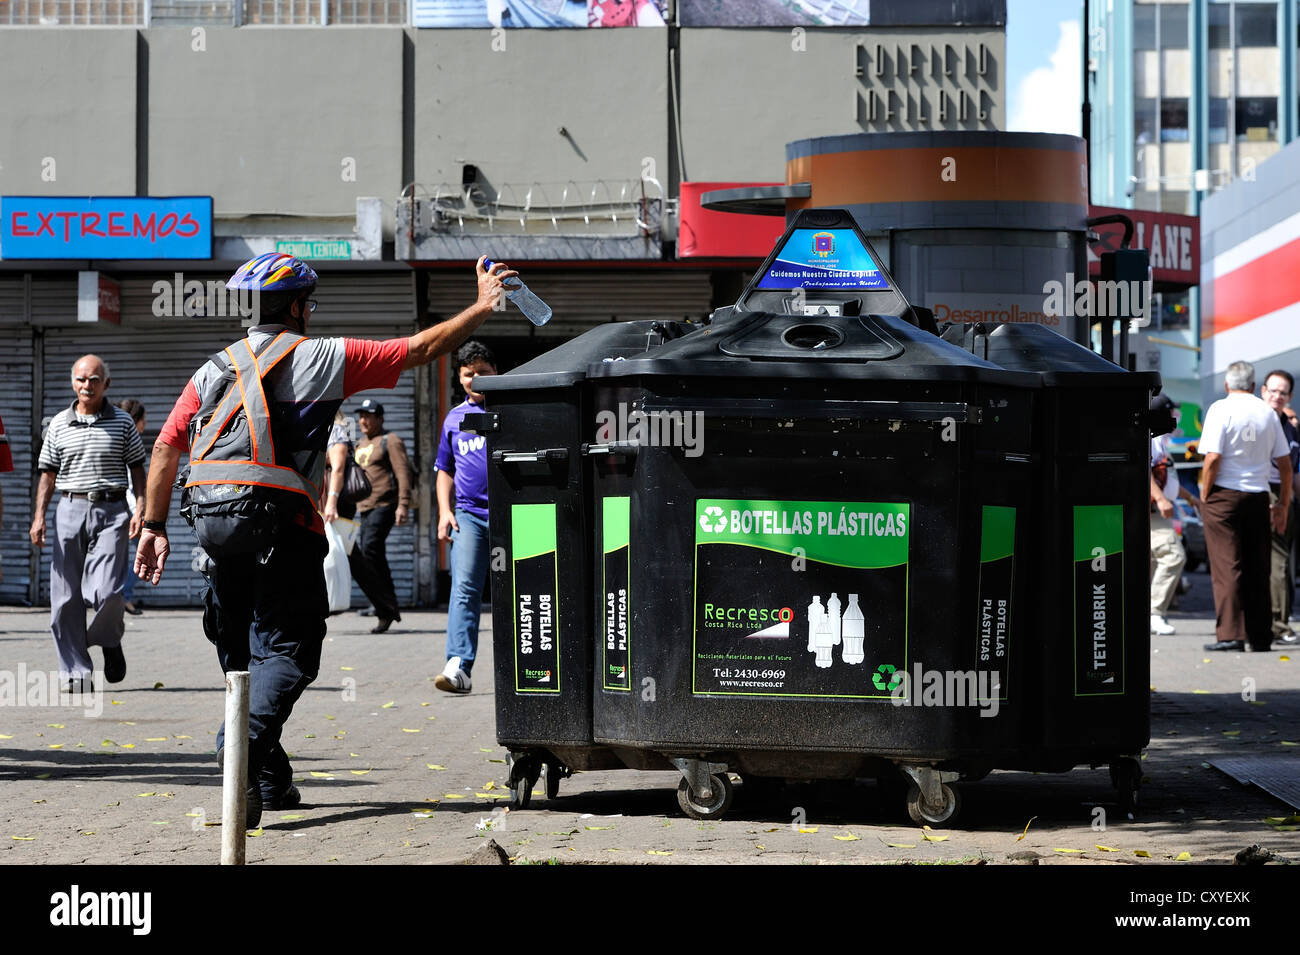 Man throwing a plastic bottle into a container for recyclables, waste separation and recycling, pedestrian zone - Stock Image